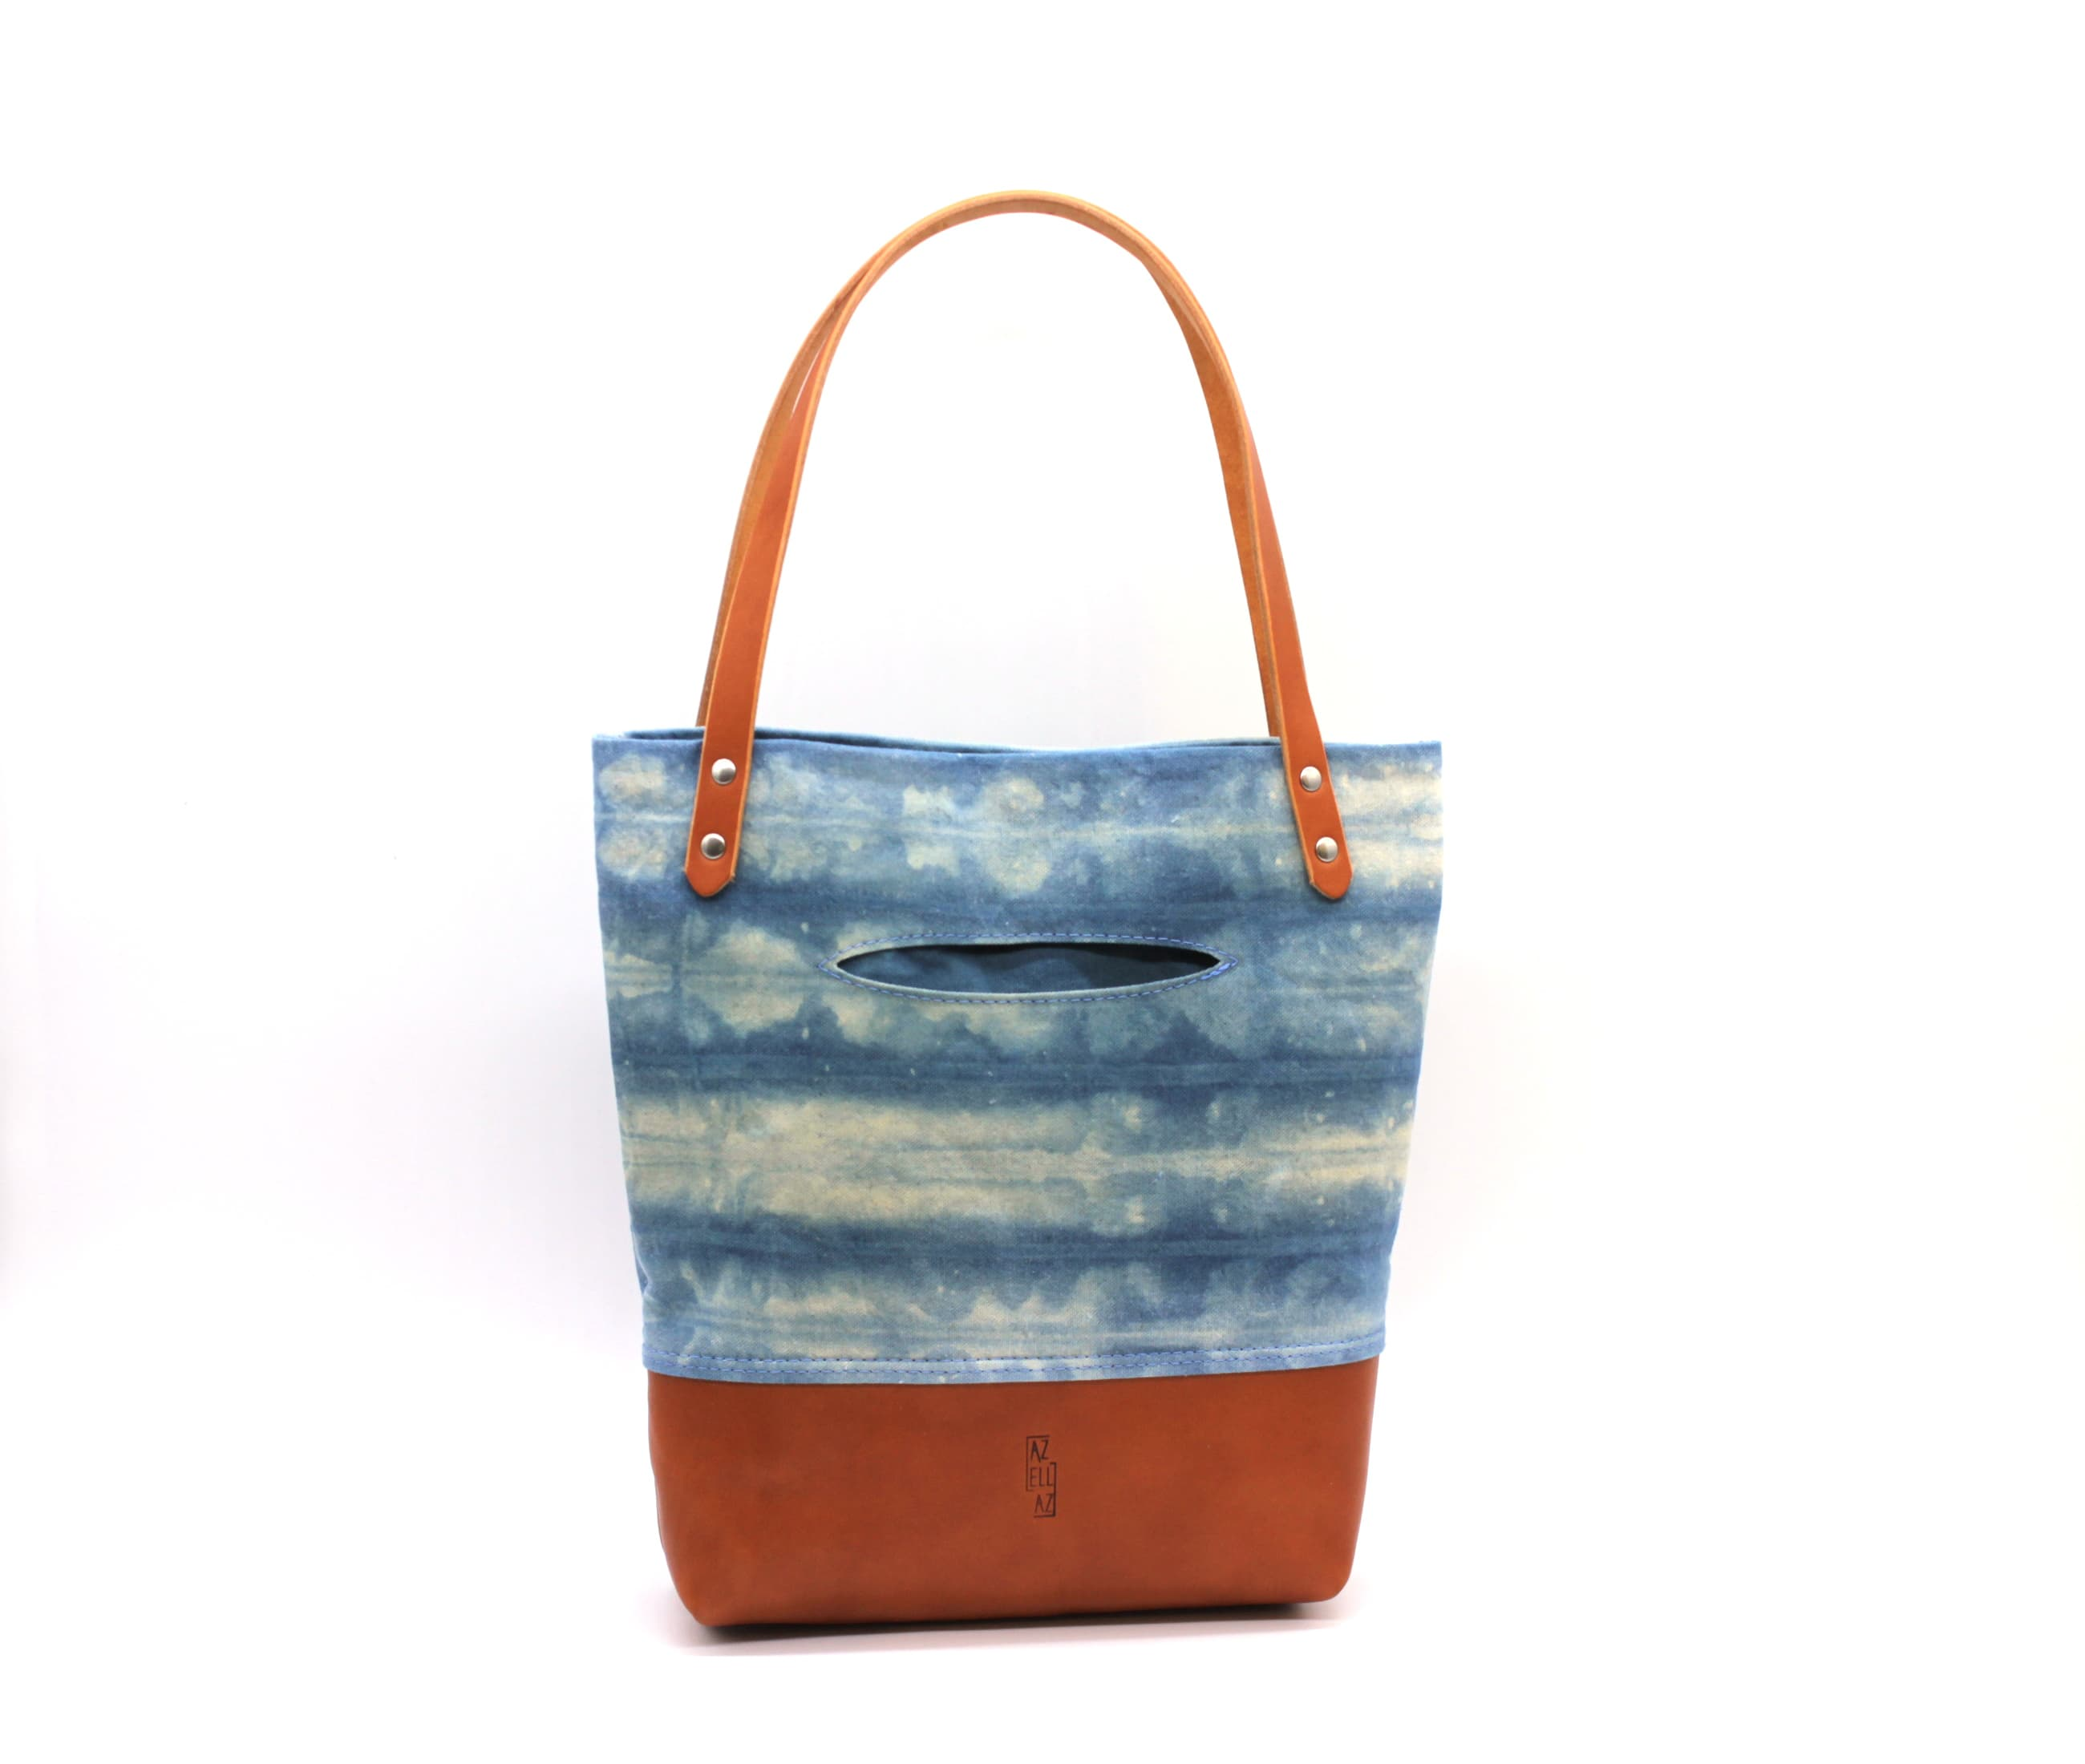 /az0062005-01_pvme7o.jpg view of the Indigo Shibori Small Tote / Tan Leather by Azellaz